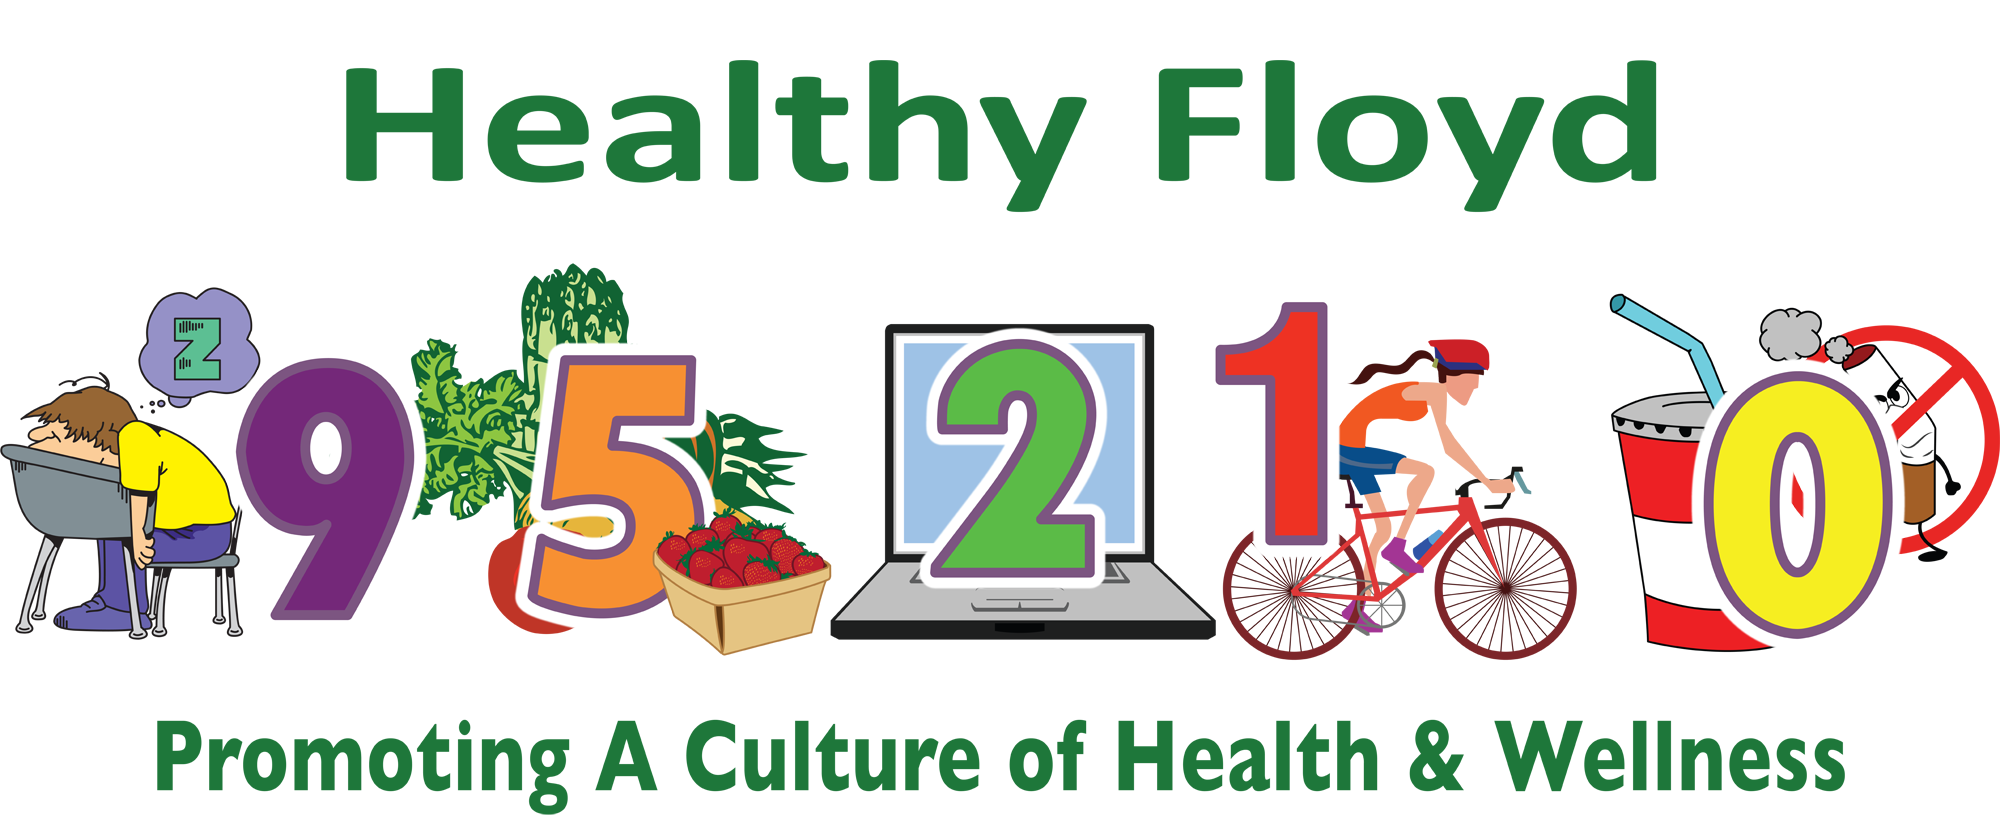 Movement clipart healthy student. Floyd enhancing health and